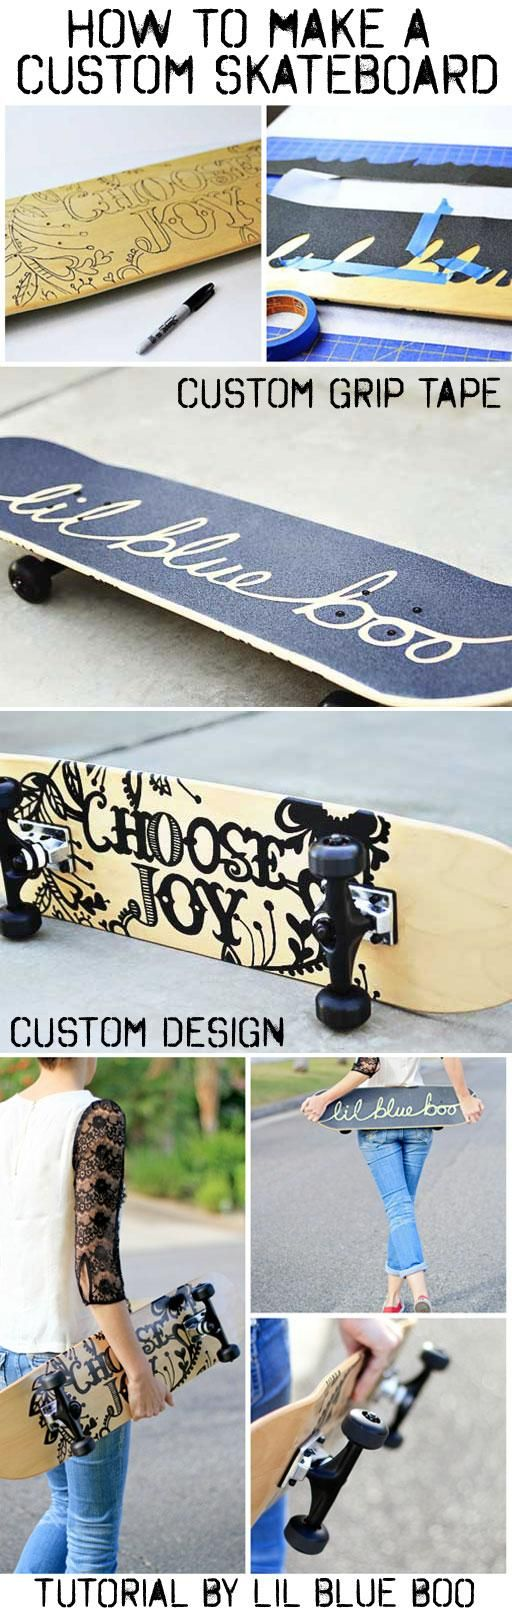 Best 25 skateboard grip tape ideas on pinterest skateboard tape how to make and paint a custom skateboard custom grip tape to custom design baanklon Gallery